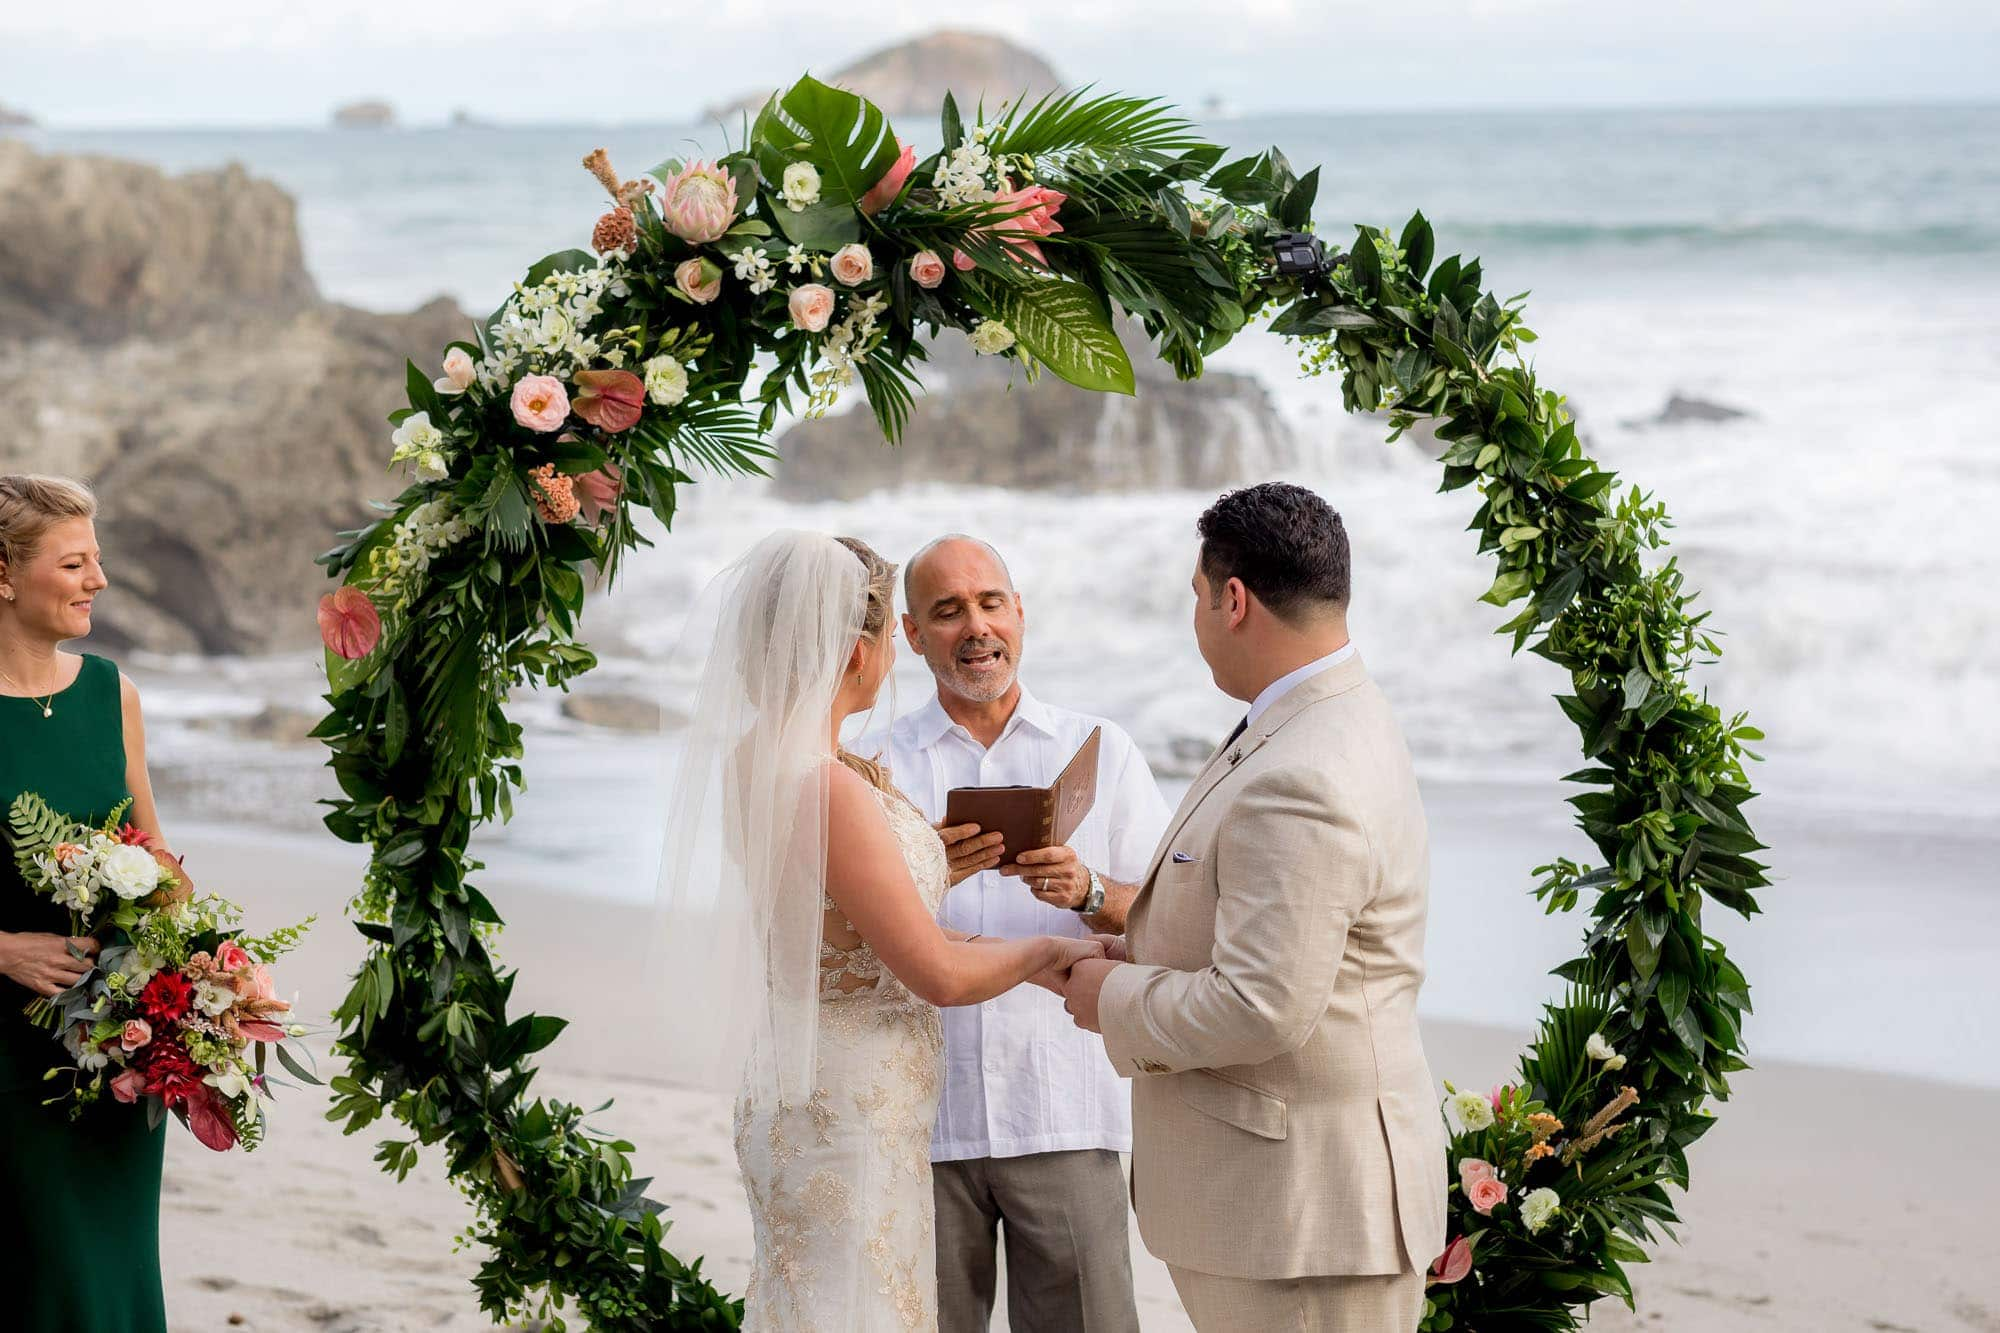 Getting married arenas del mar